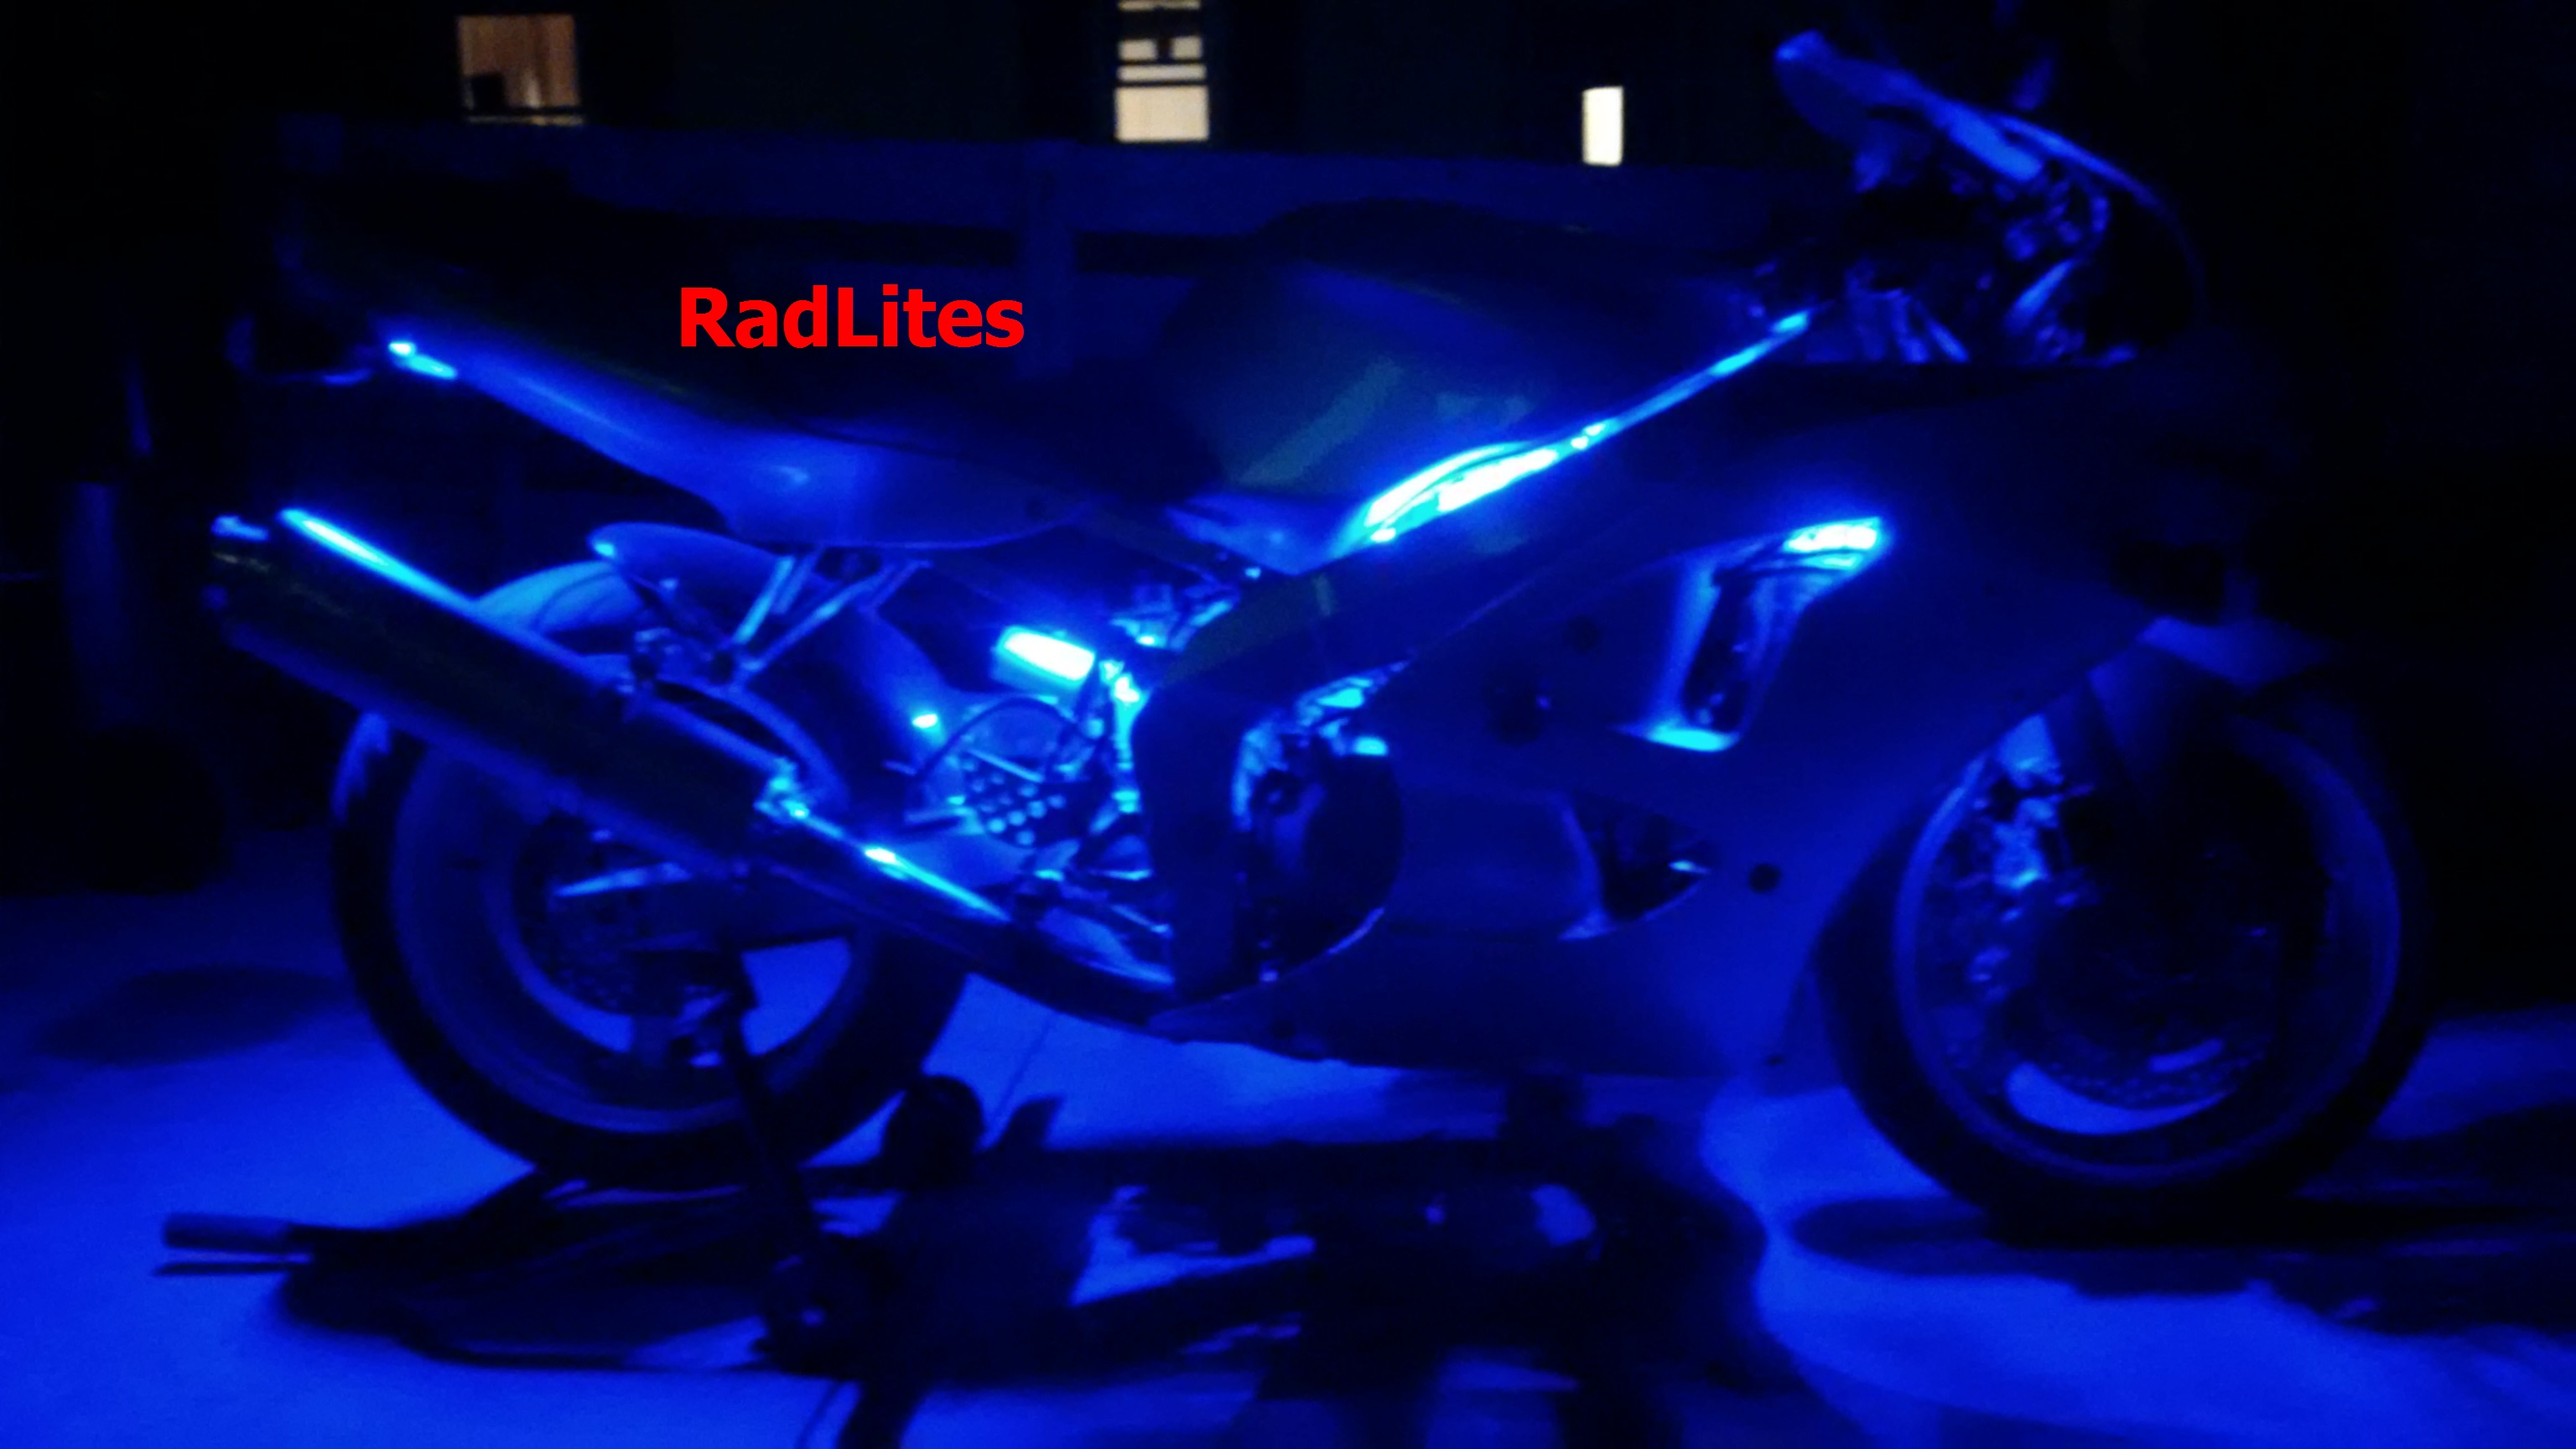 Accent Engine Interior Body LED Lighting Kits & Harley Davidson Engine Lighting azcodes.com